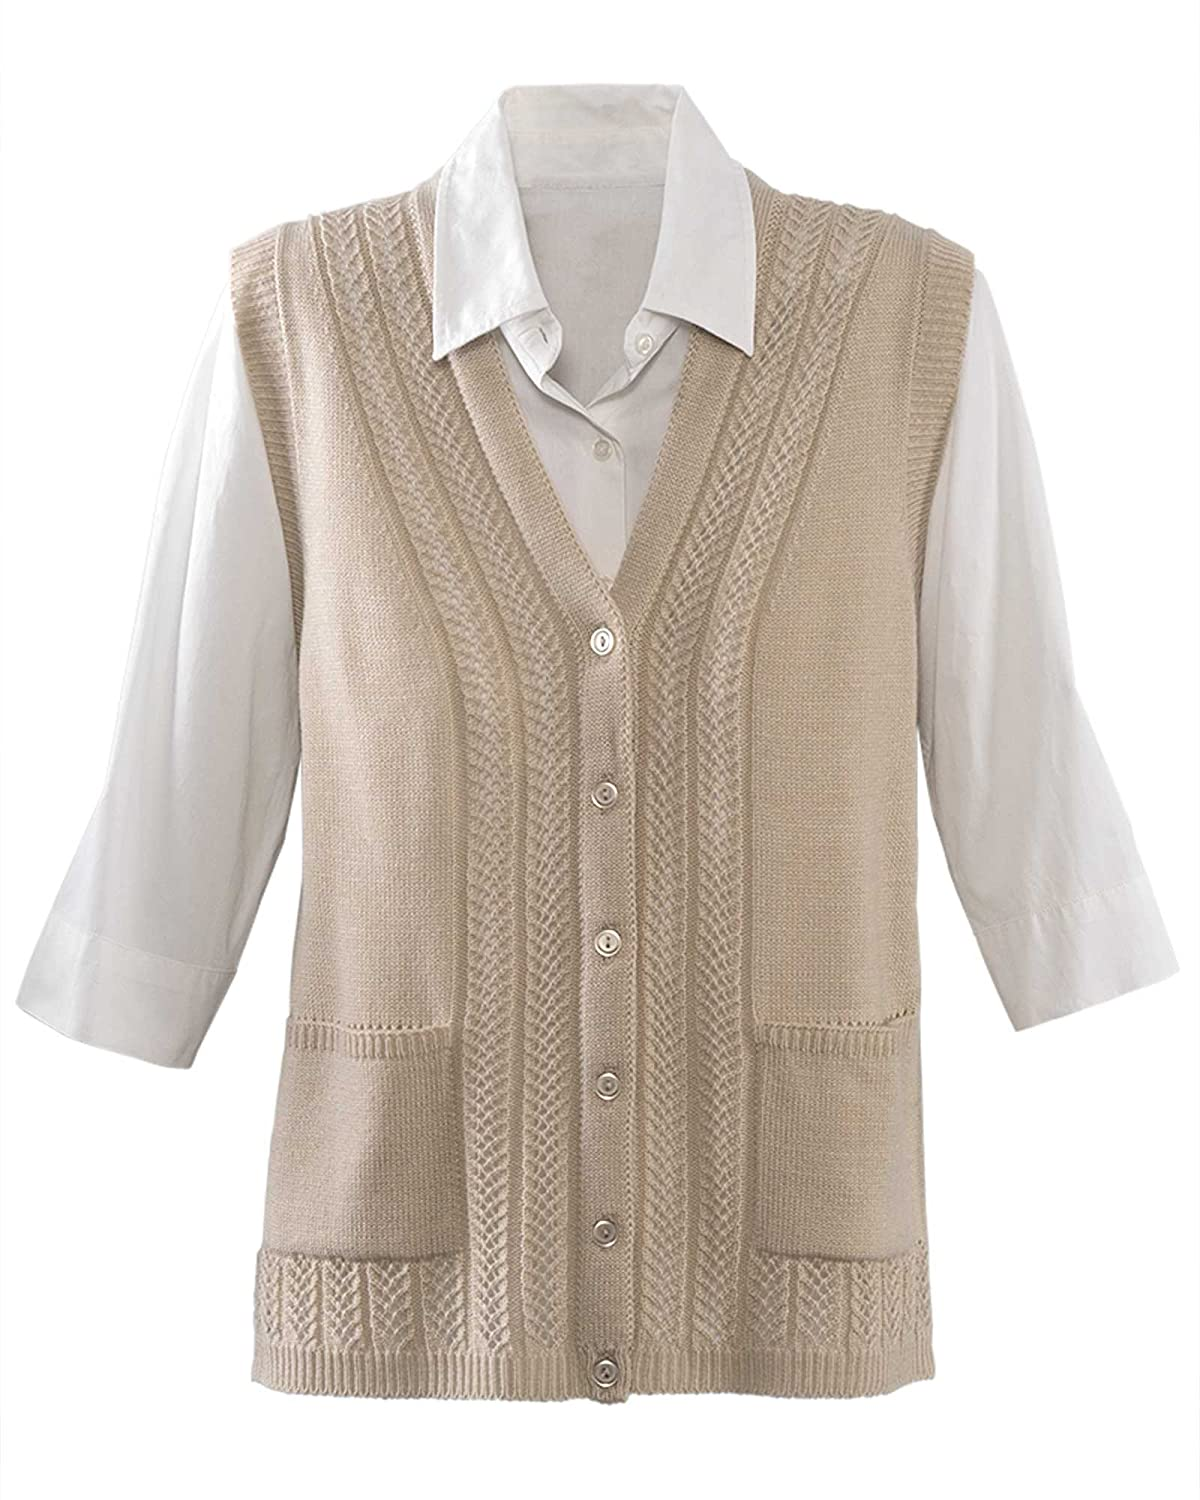 60s 70s Style Sweaters, Cardigans & Jumpers National Classic Sweater Vest $34.95 AT vintagedancer.com